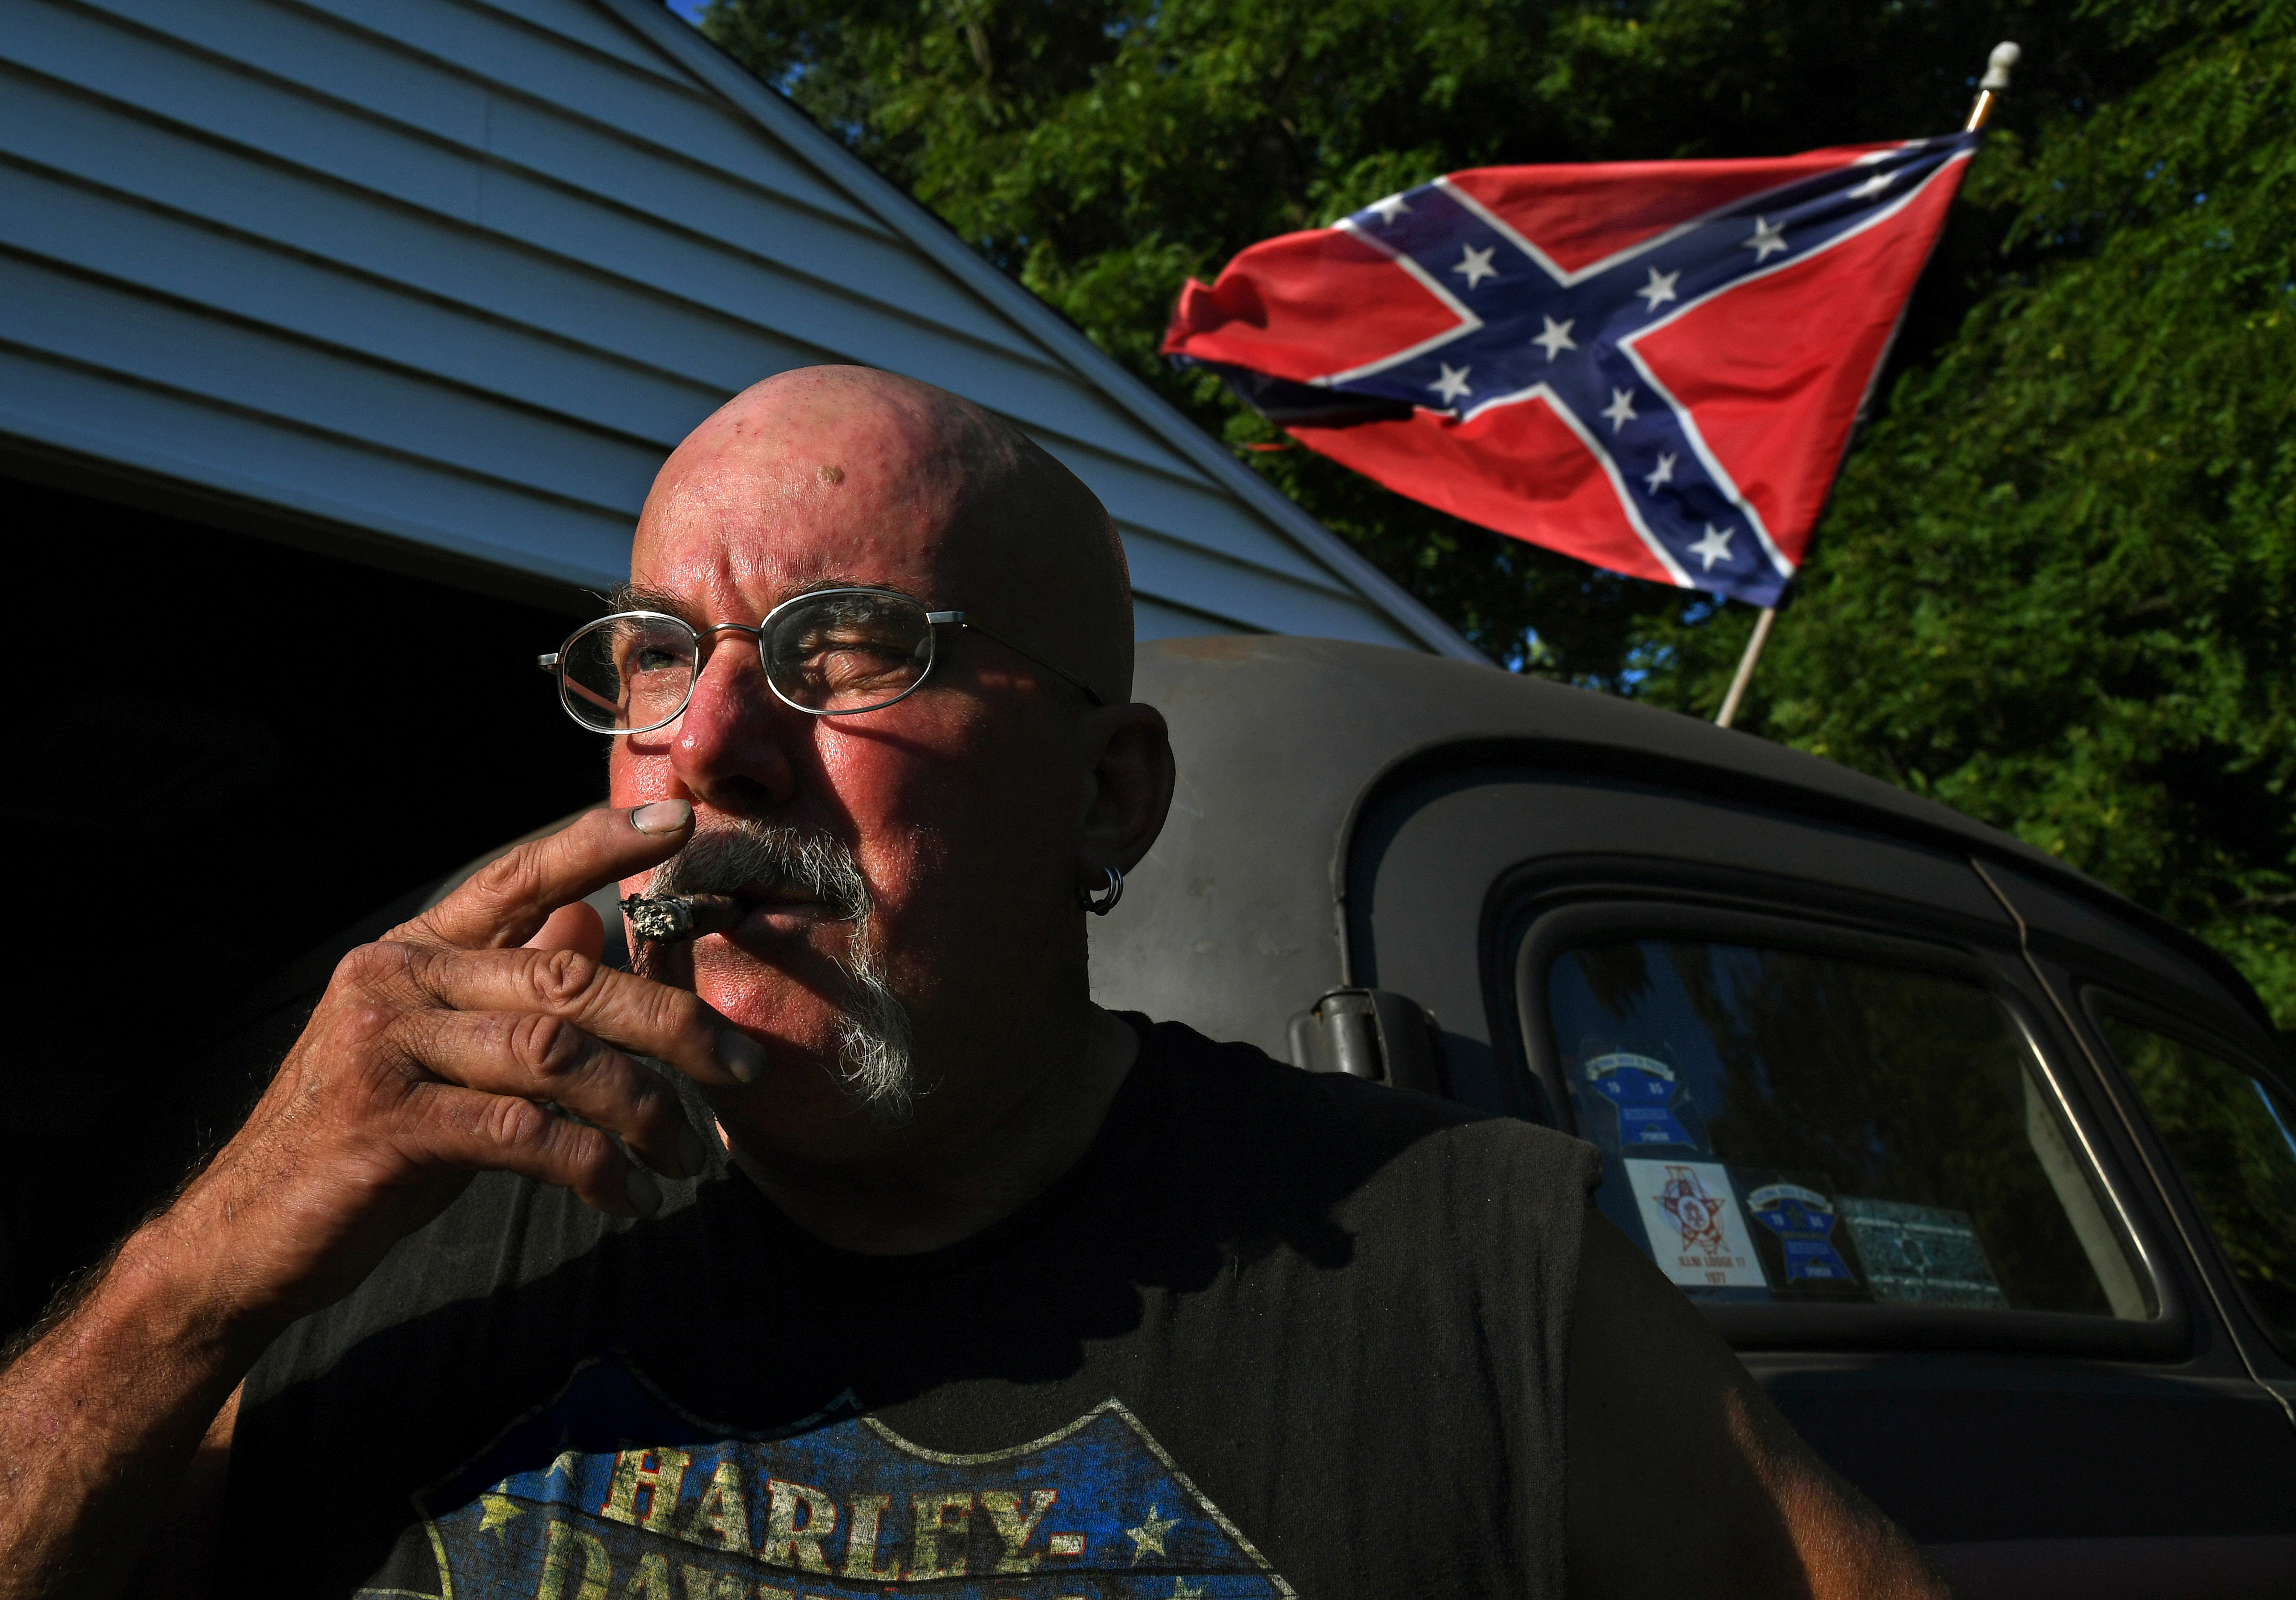 Greg Cler is a Northerner who feels a bond with the Confederate flag. As in the South, many whites in the North say the flag is not a symbol of hate. MUST CREDIT: Washington Post photo by Michael S. Williamson